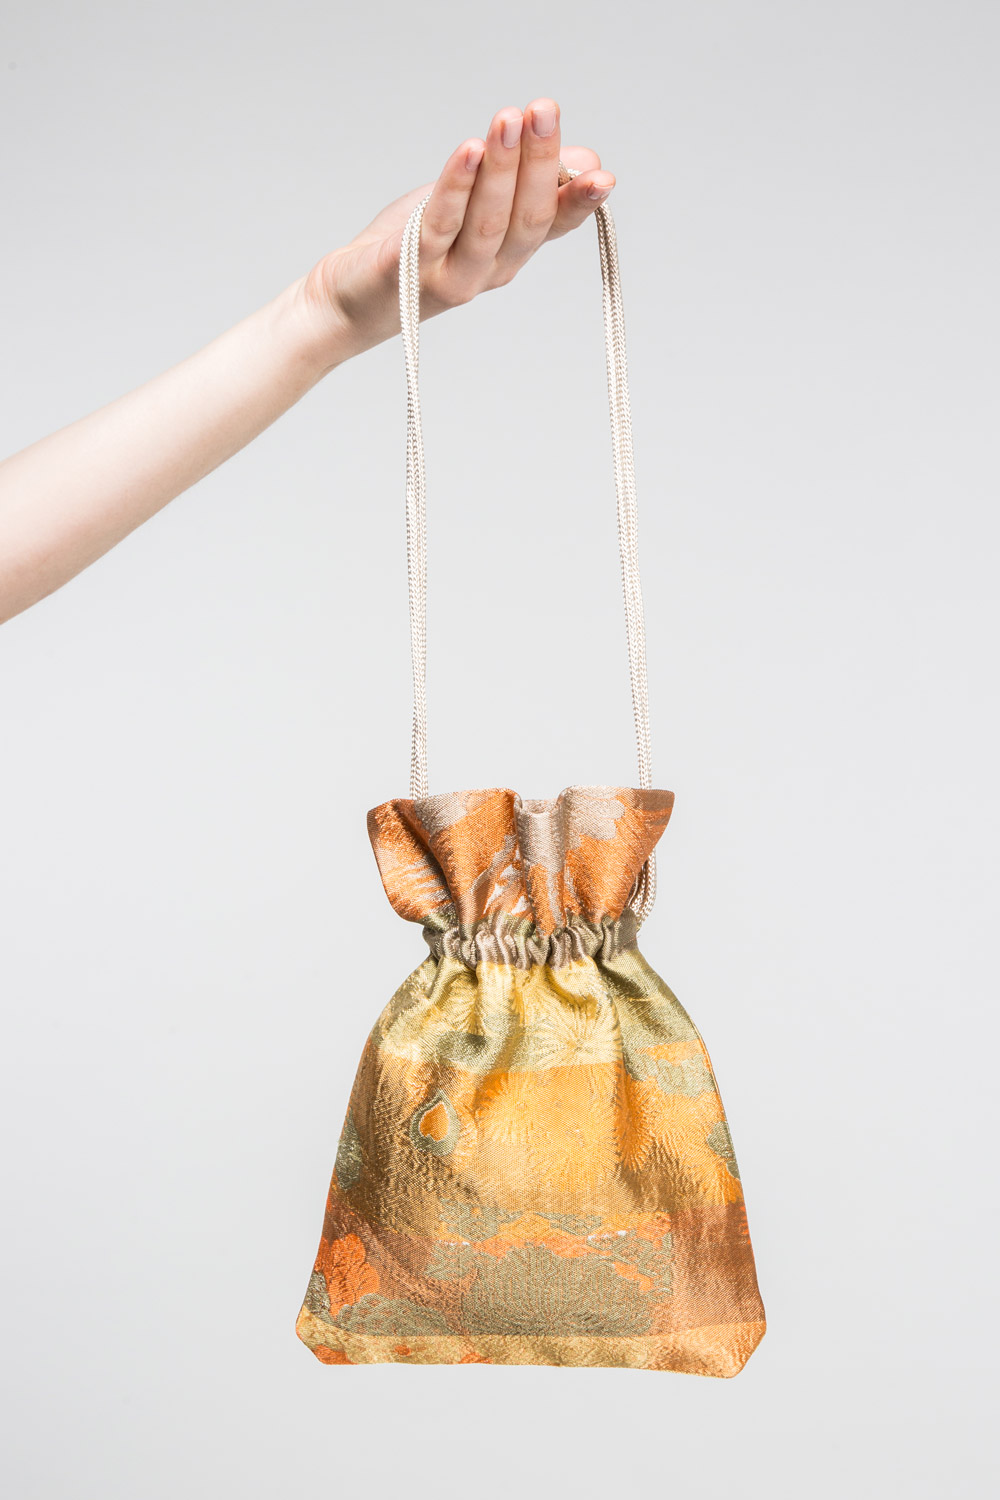 Drawstring Bag in Obi Brocade  $395